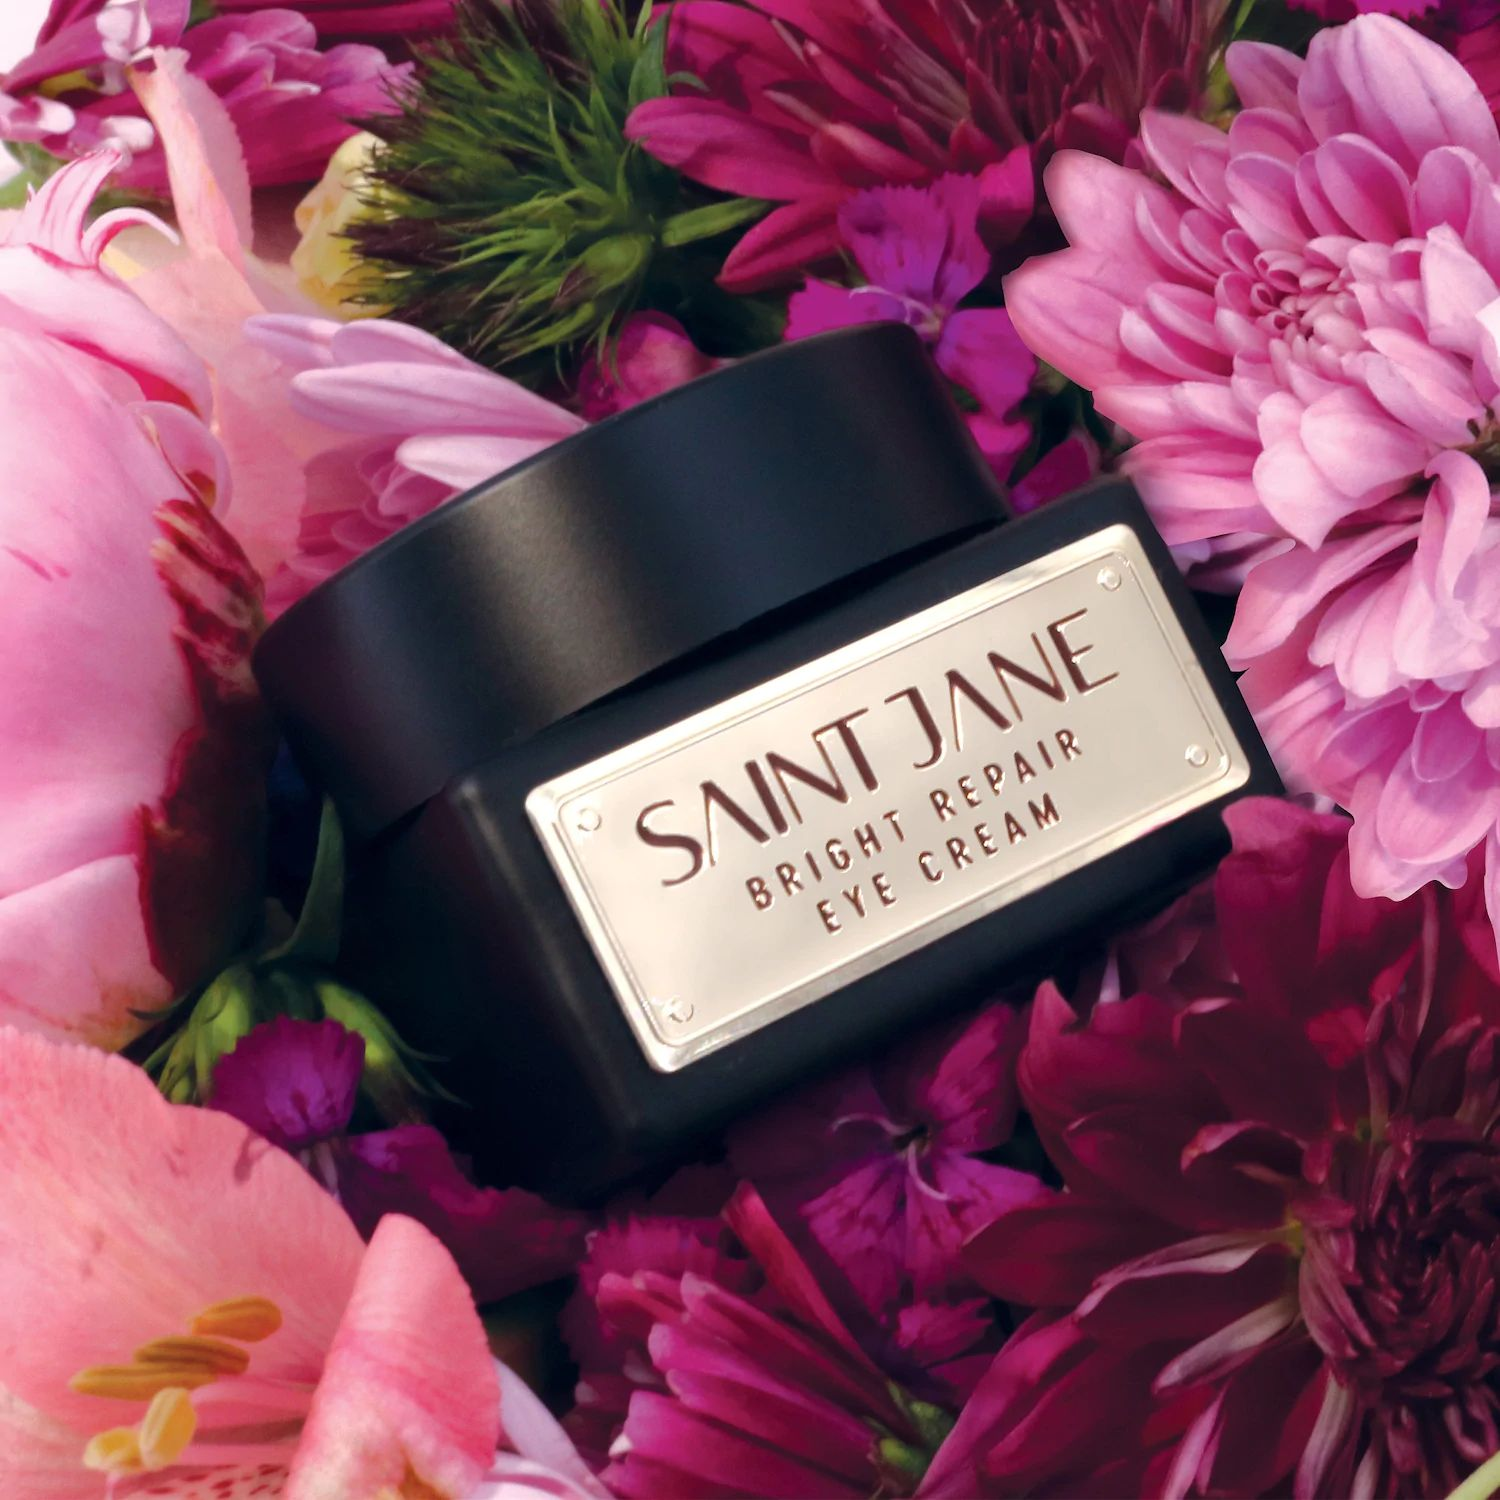 Saint Jane Eye Cream review